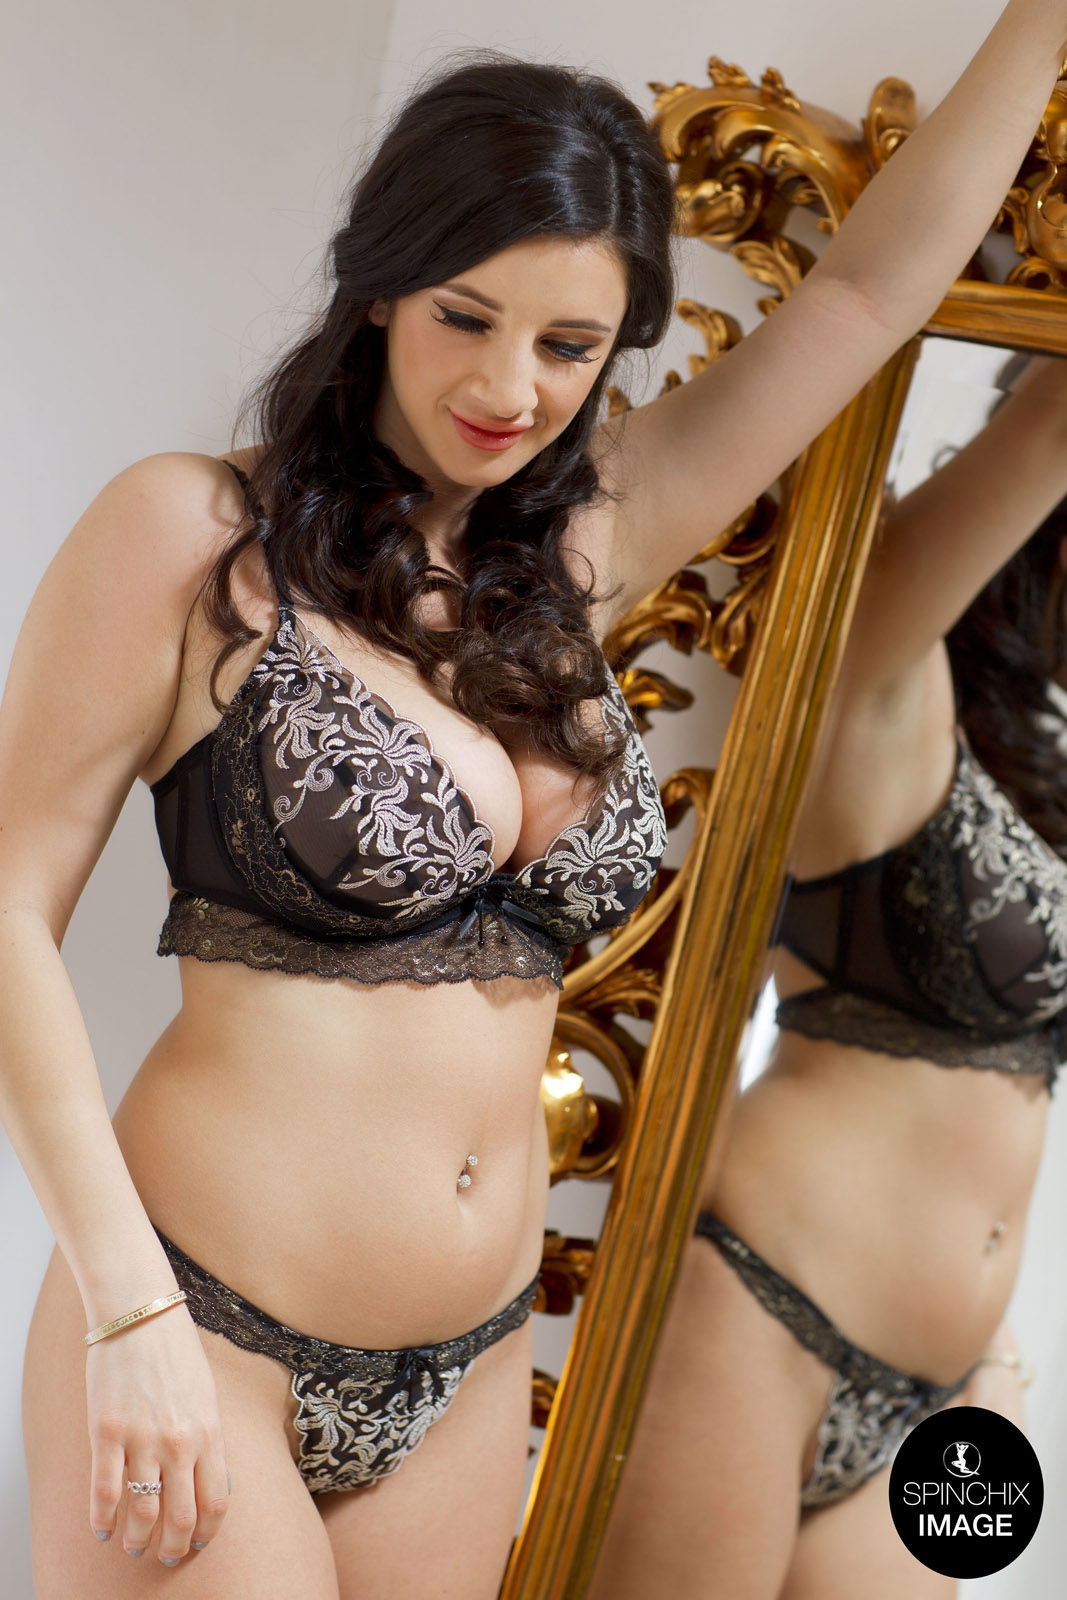 cara ruby black lace lingerie for spinchix curvy erotic